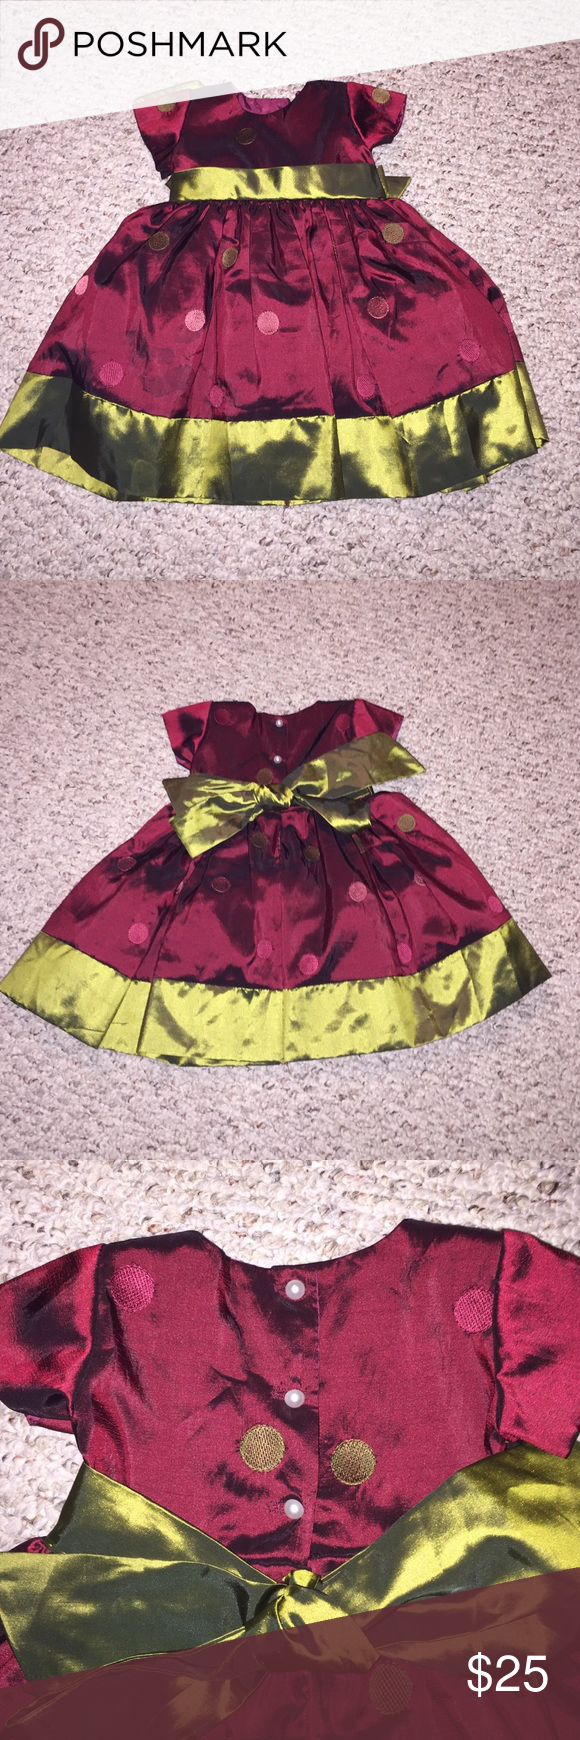 Swea Pea & Lilli Beautiful Baby Girl Dress Swea Pea & Lilli Beautiful Baby Girl Dress; deep burgundy and green with bow tie in back; pearl bottom closure on back; sz Med (my daughter was 6 months old when she wore it); only worn once; in excellent condition Swea Pea & Lilli Dresses Formal